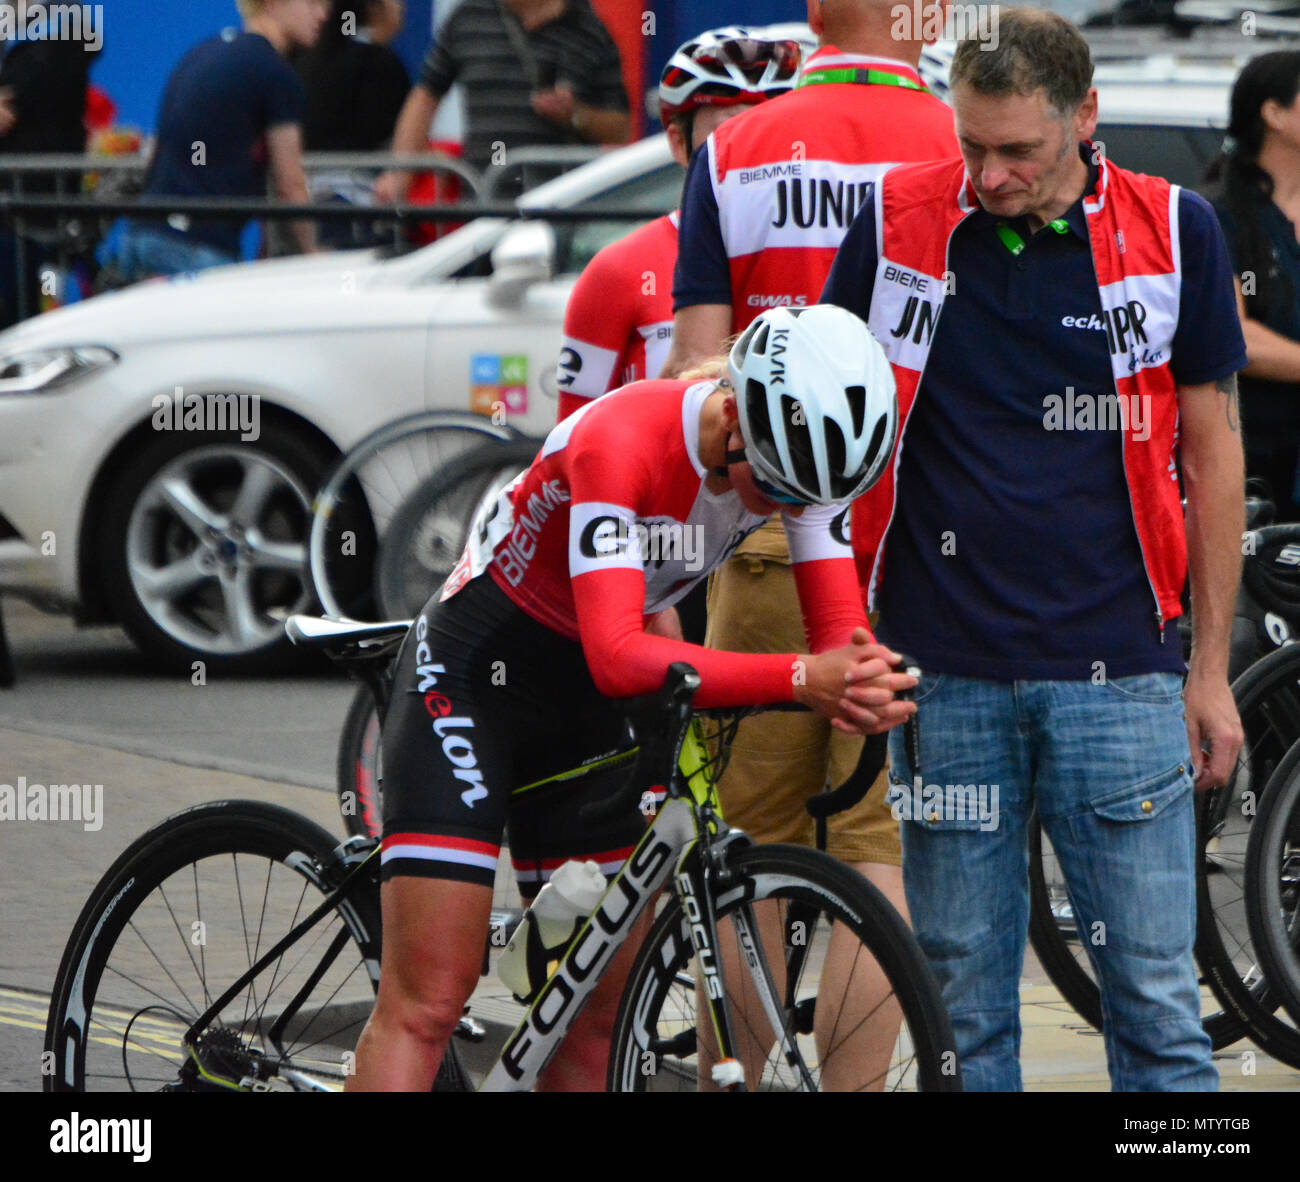 Salisbury, Wiltshire, UK. 31st May 2018. 2018 OVO Energy Tour Series Grand Final. Credit: JWO/Alamy Live News Stock Photo